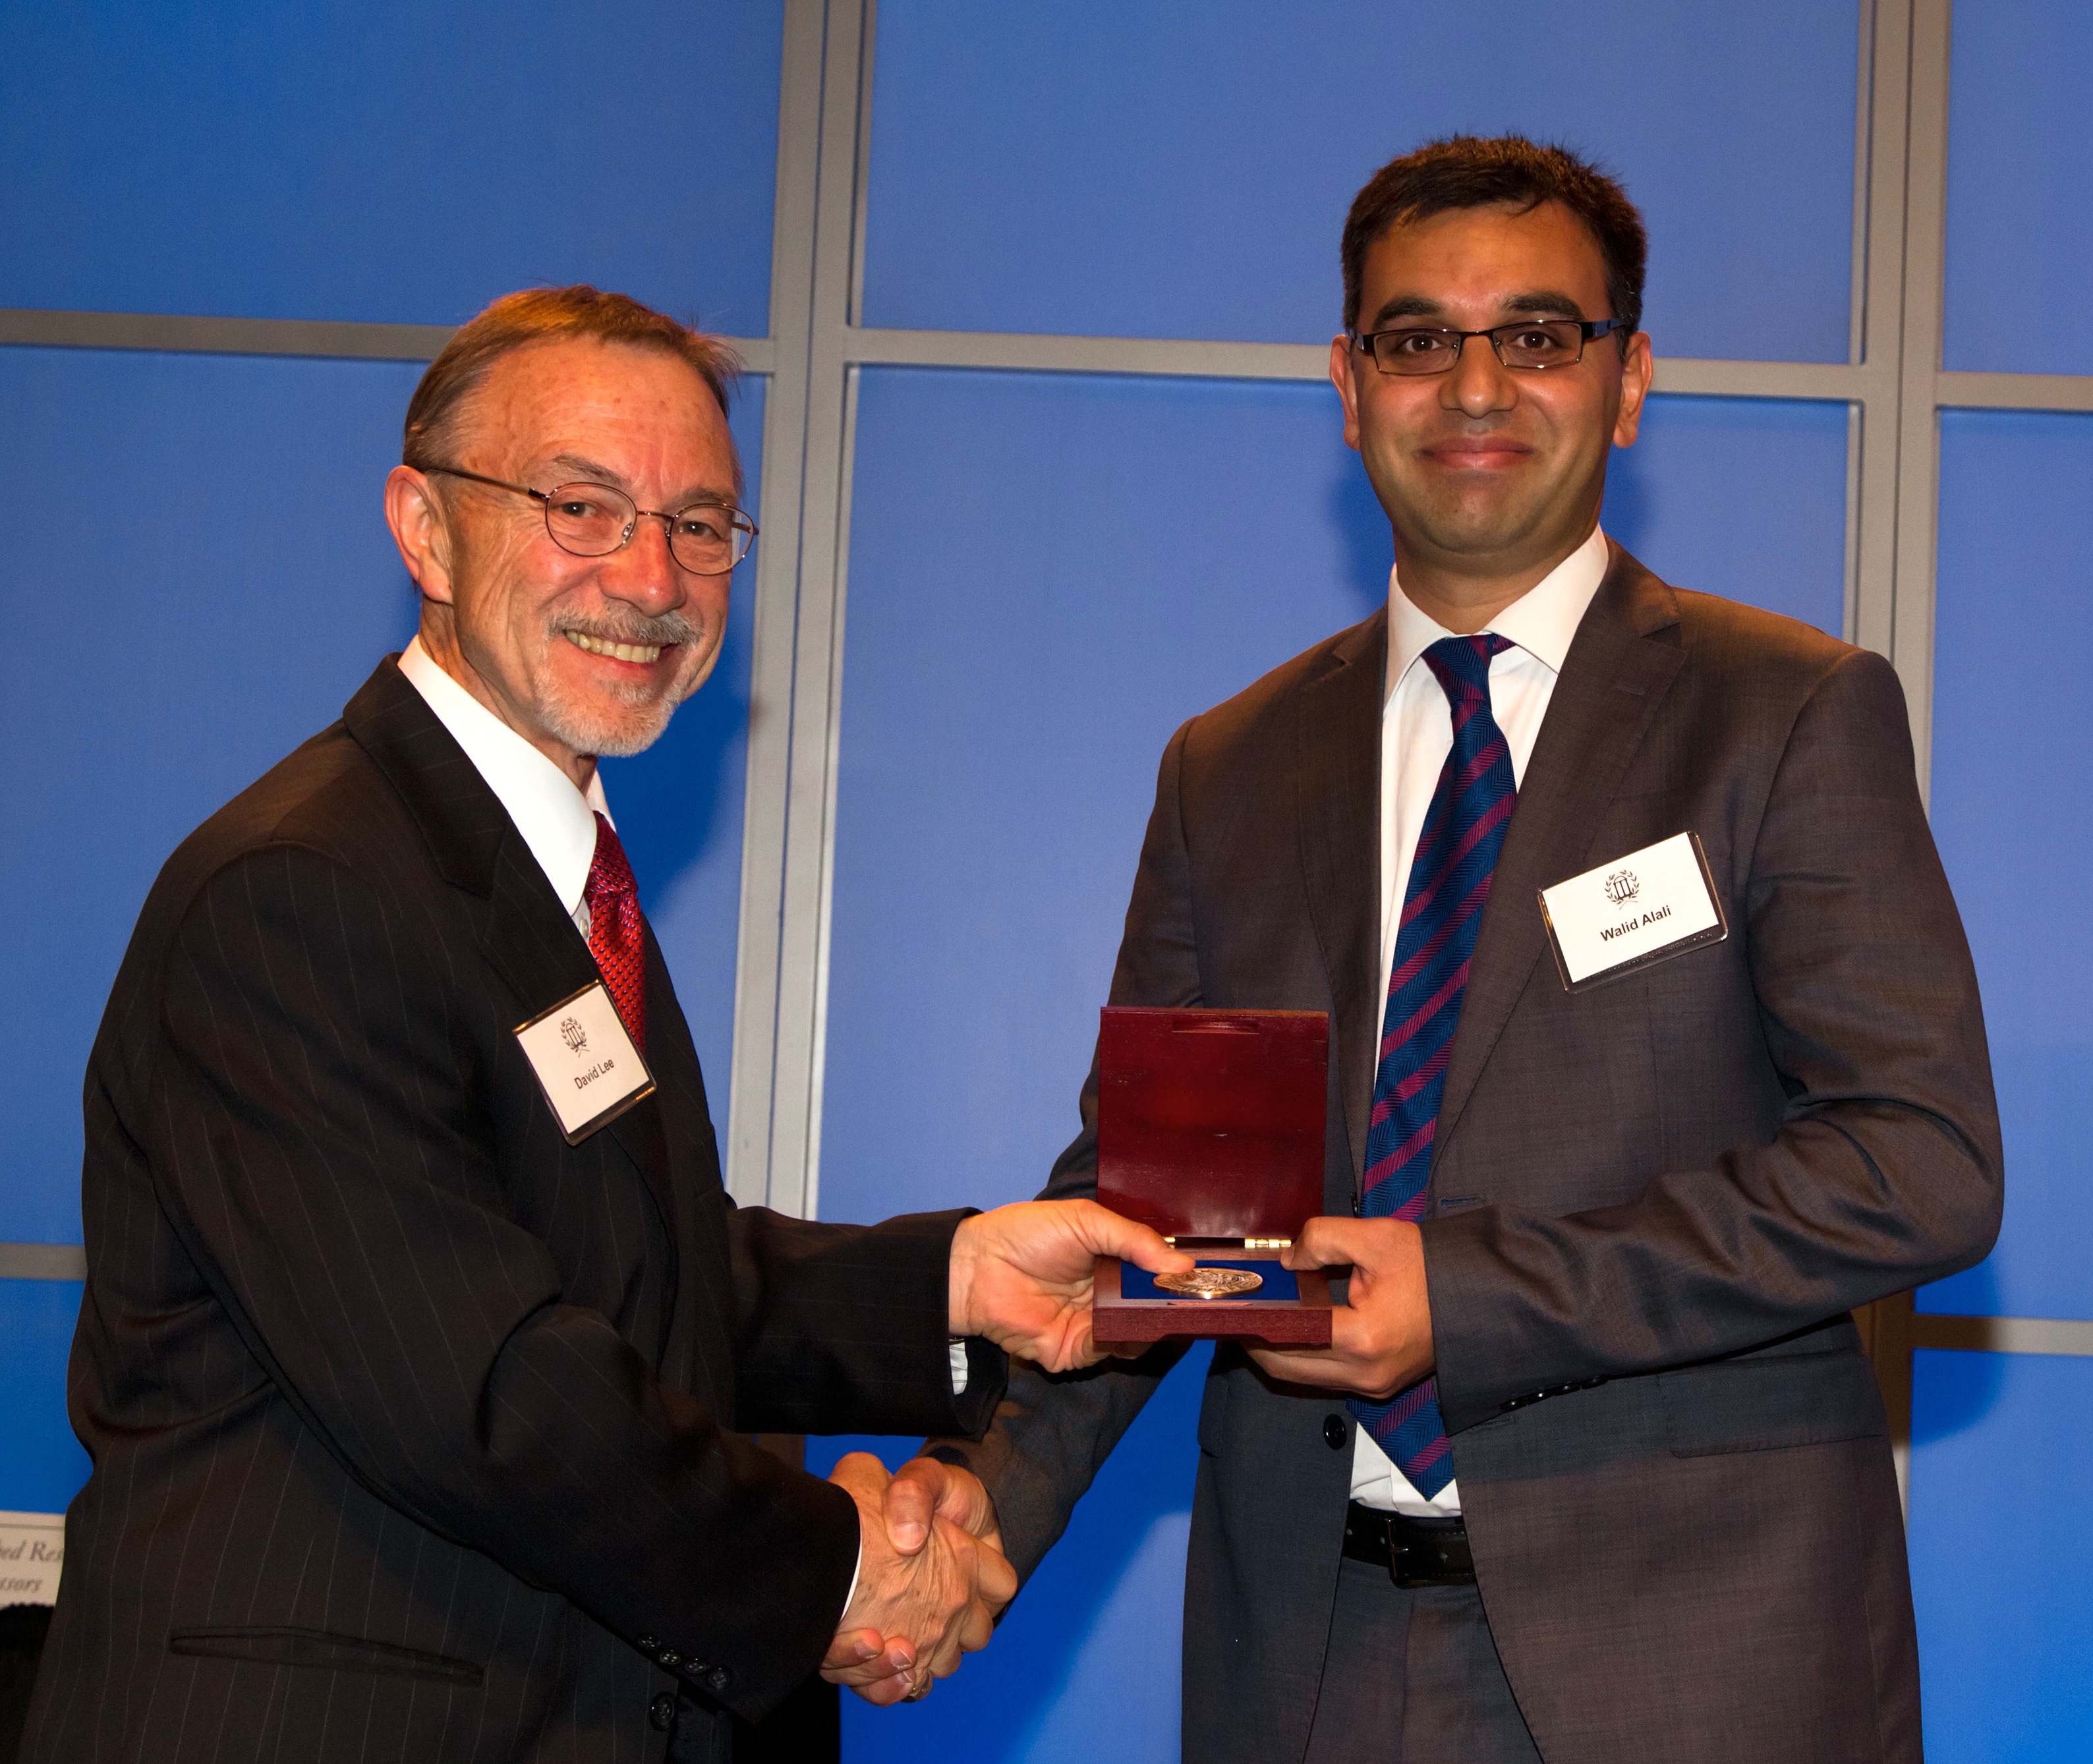 University of Georgia scientist Walid Alali was presented the university's 2014 Creative Research Medal based on his research on salmonella in the poultry industry. Alali is a food scientist with the University of Georgia College of Agricultural and Environmental Sciences. He is shown (right) receiving the honor from UGA Vice President for Research David Lee.